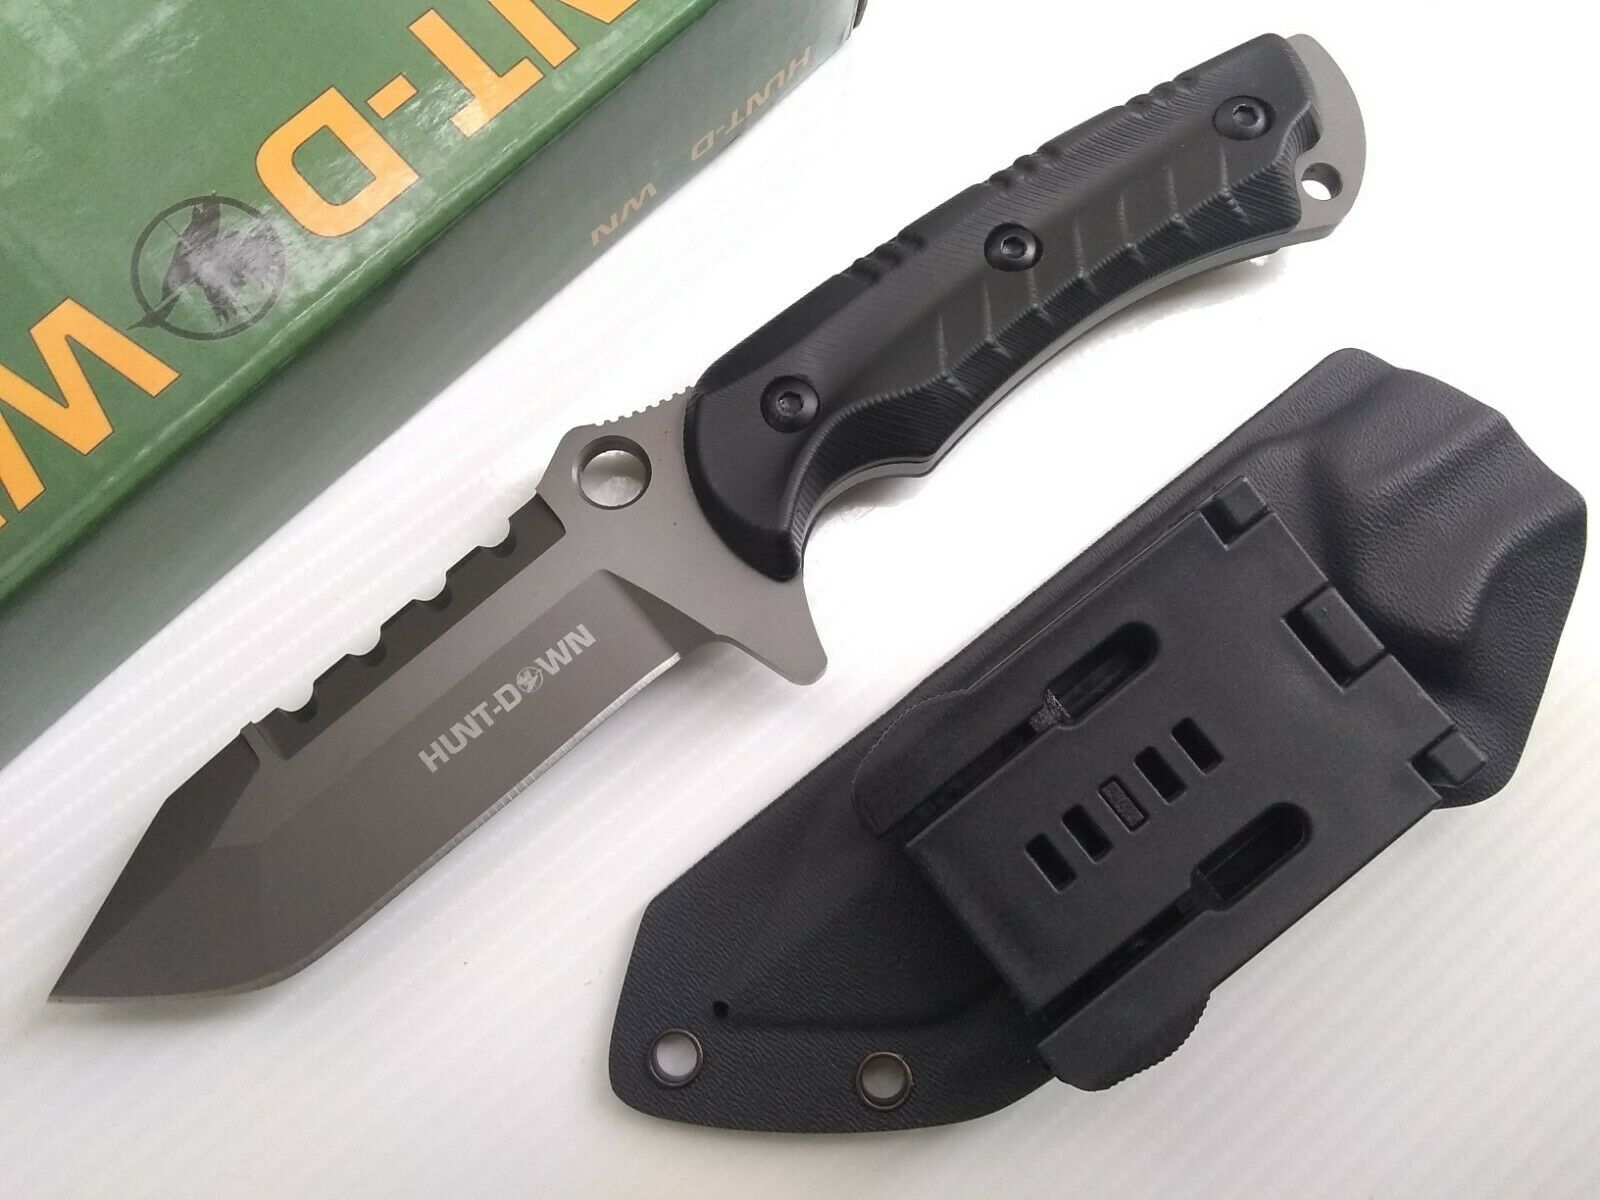 Horizontal Concealed Carry 5 mm Thick Fixed Blade Knife w/ Kydex Holster Sheath